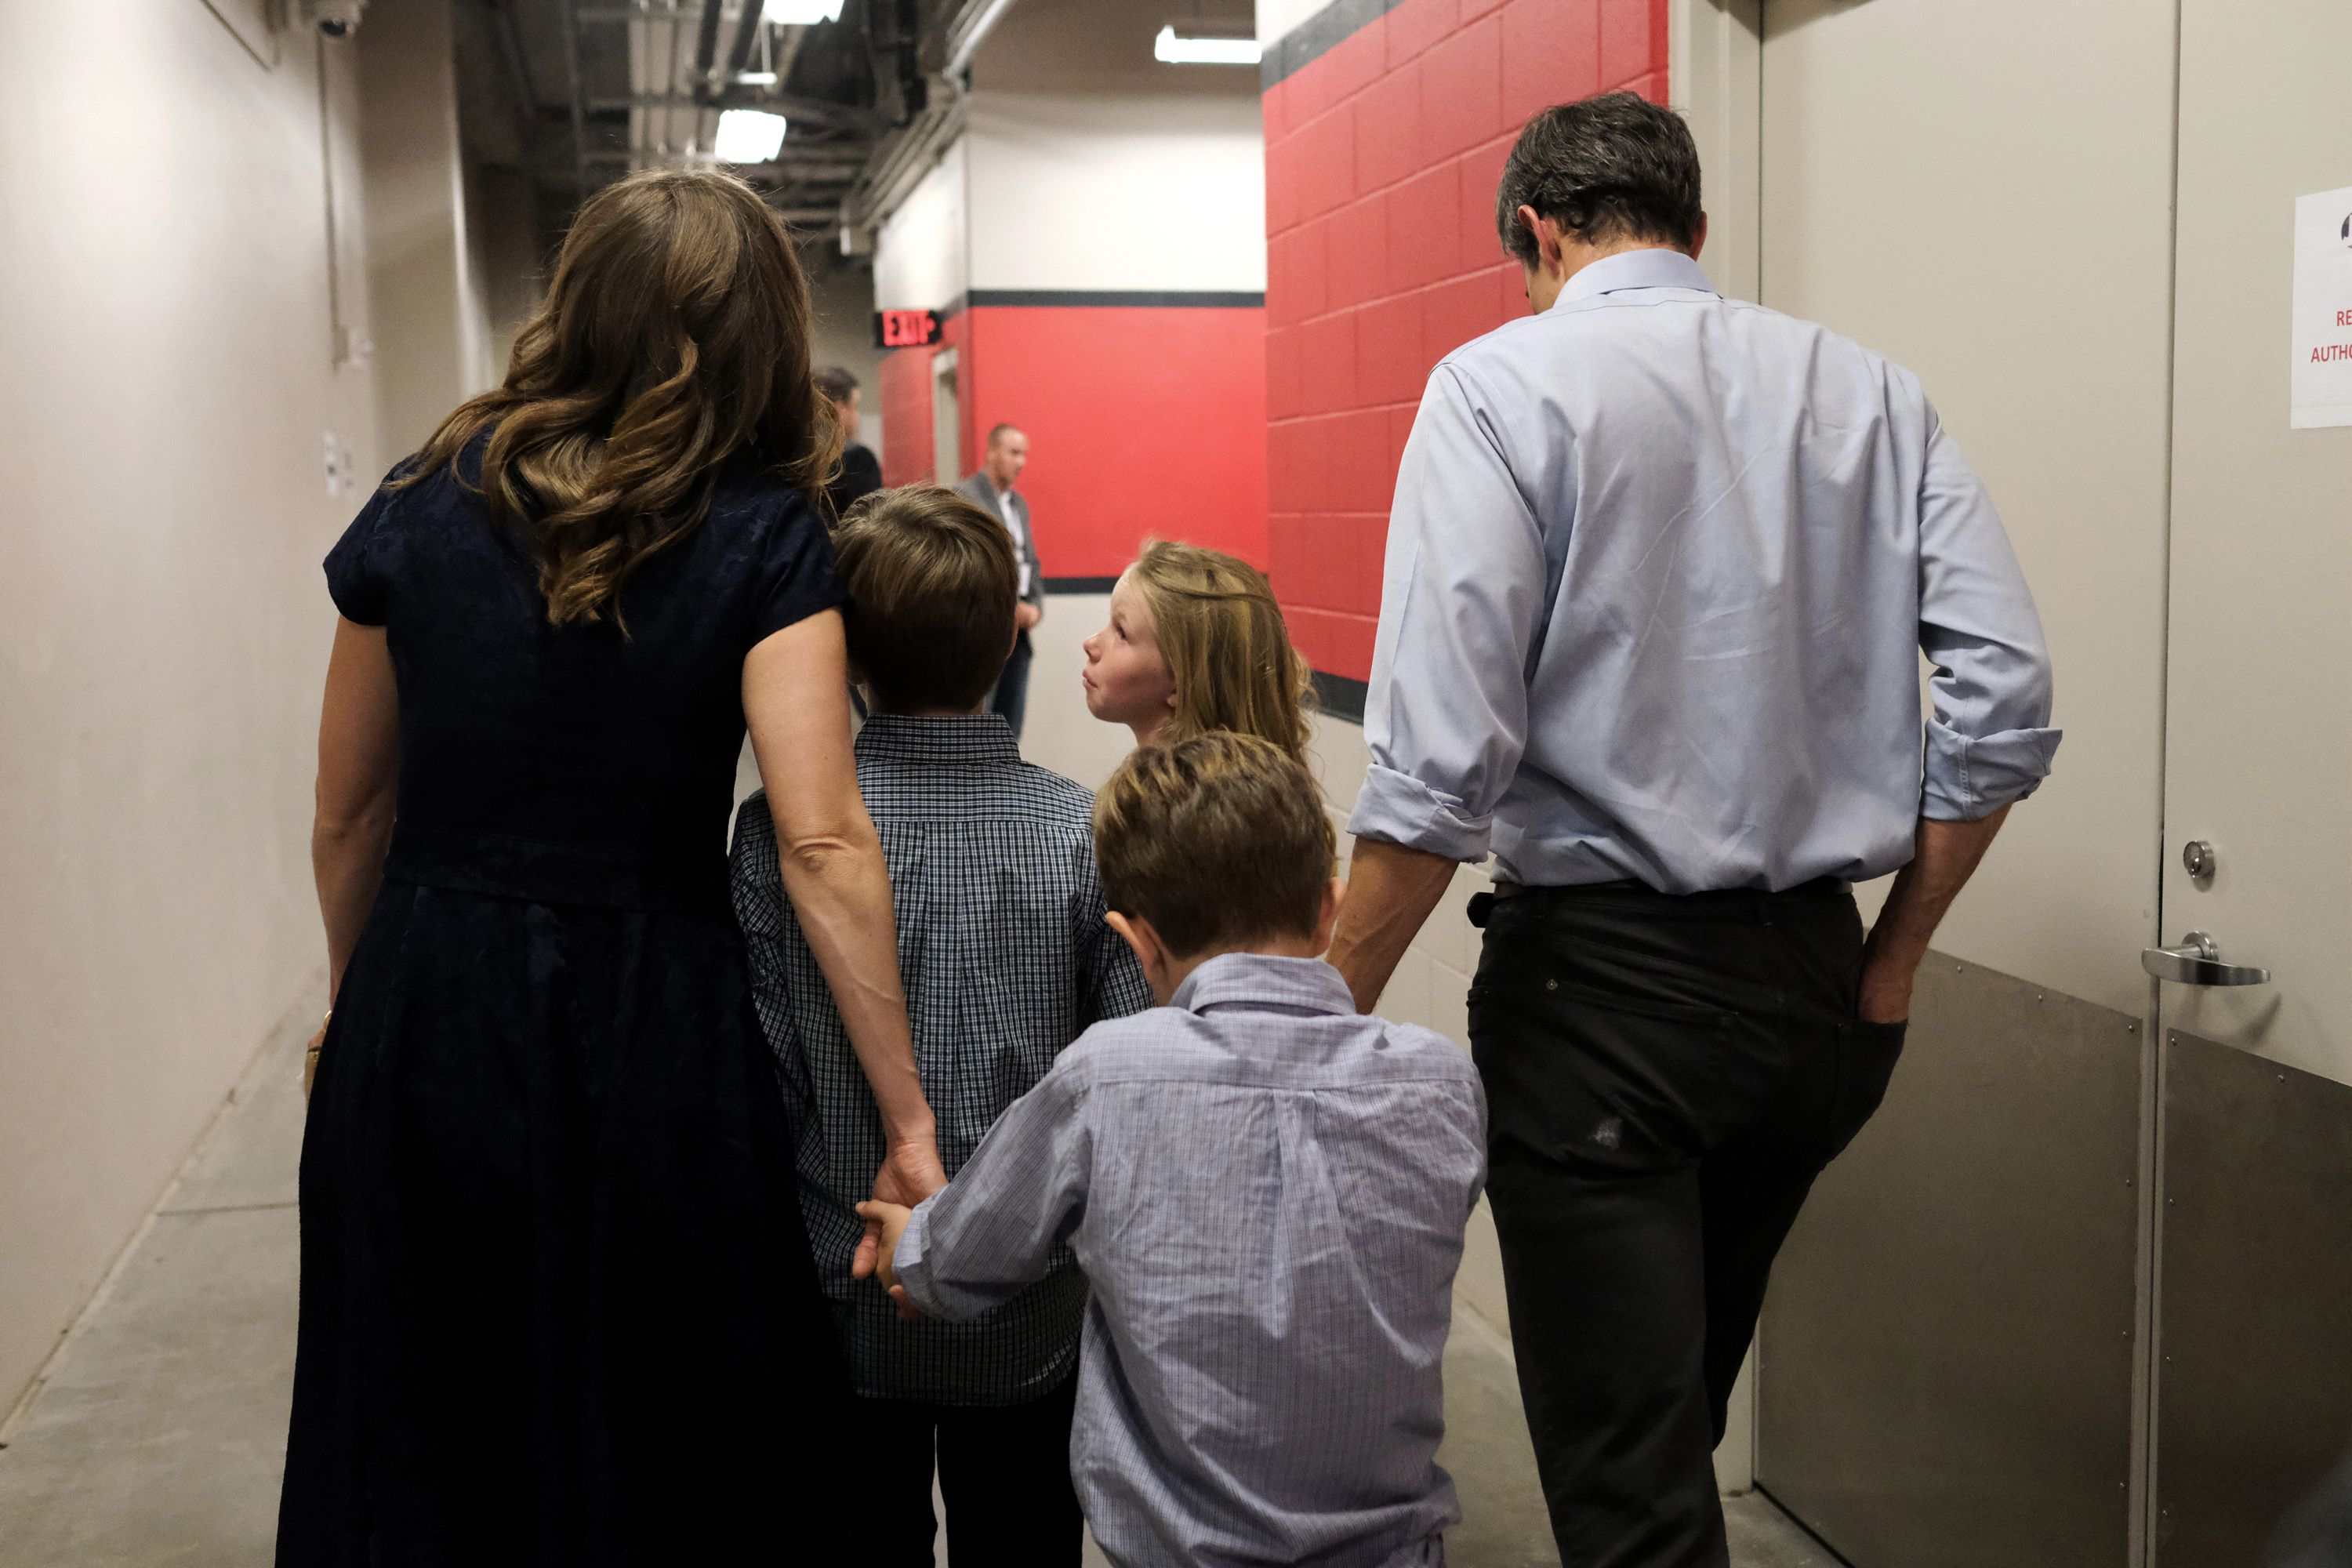 We were at the candidate's side during the final moments of his historic campaign.